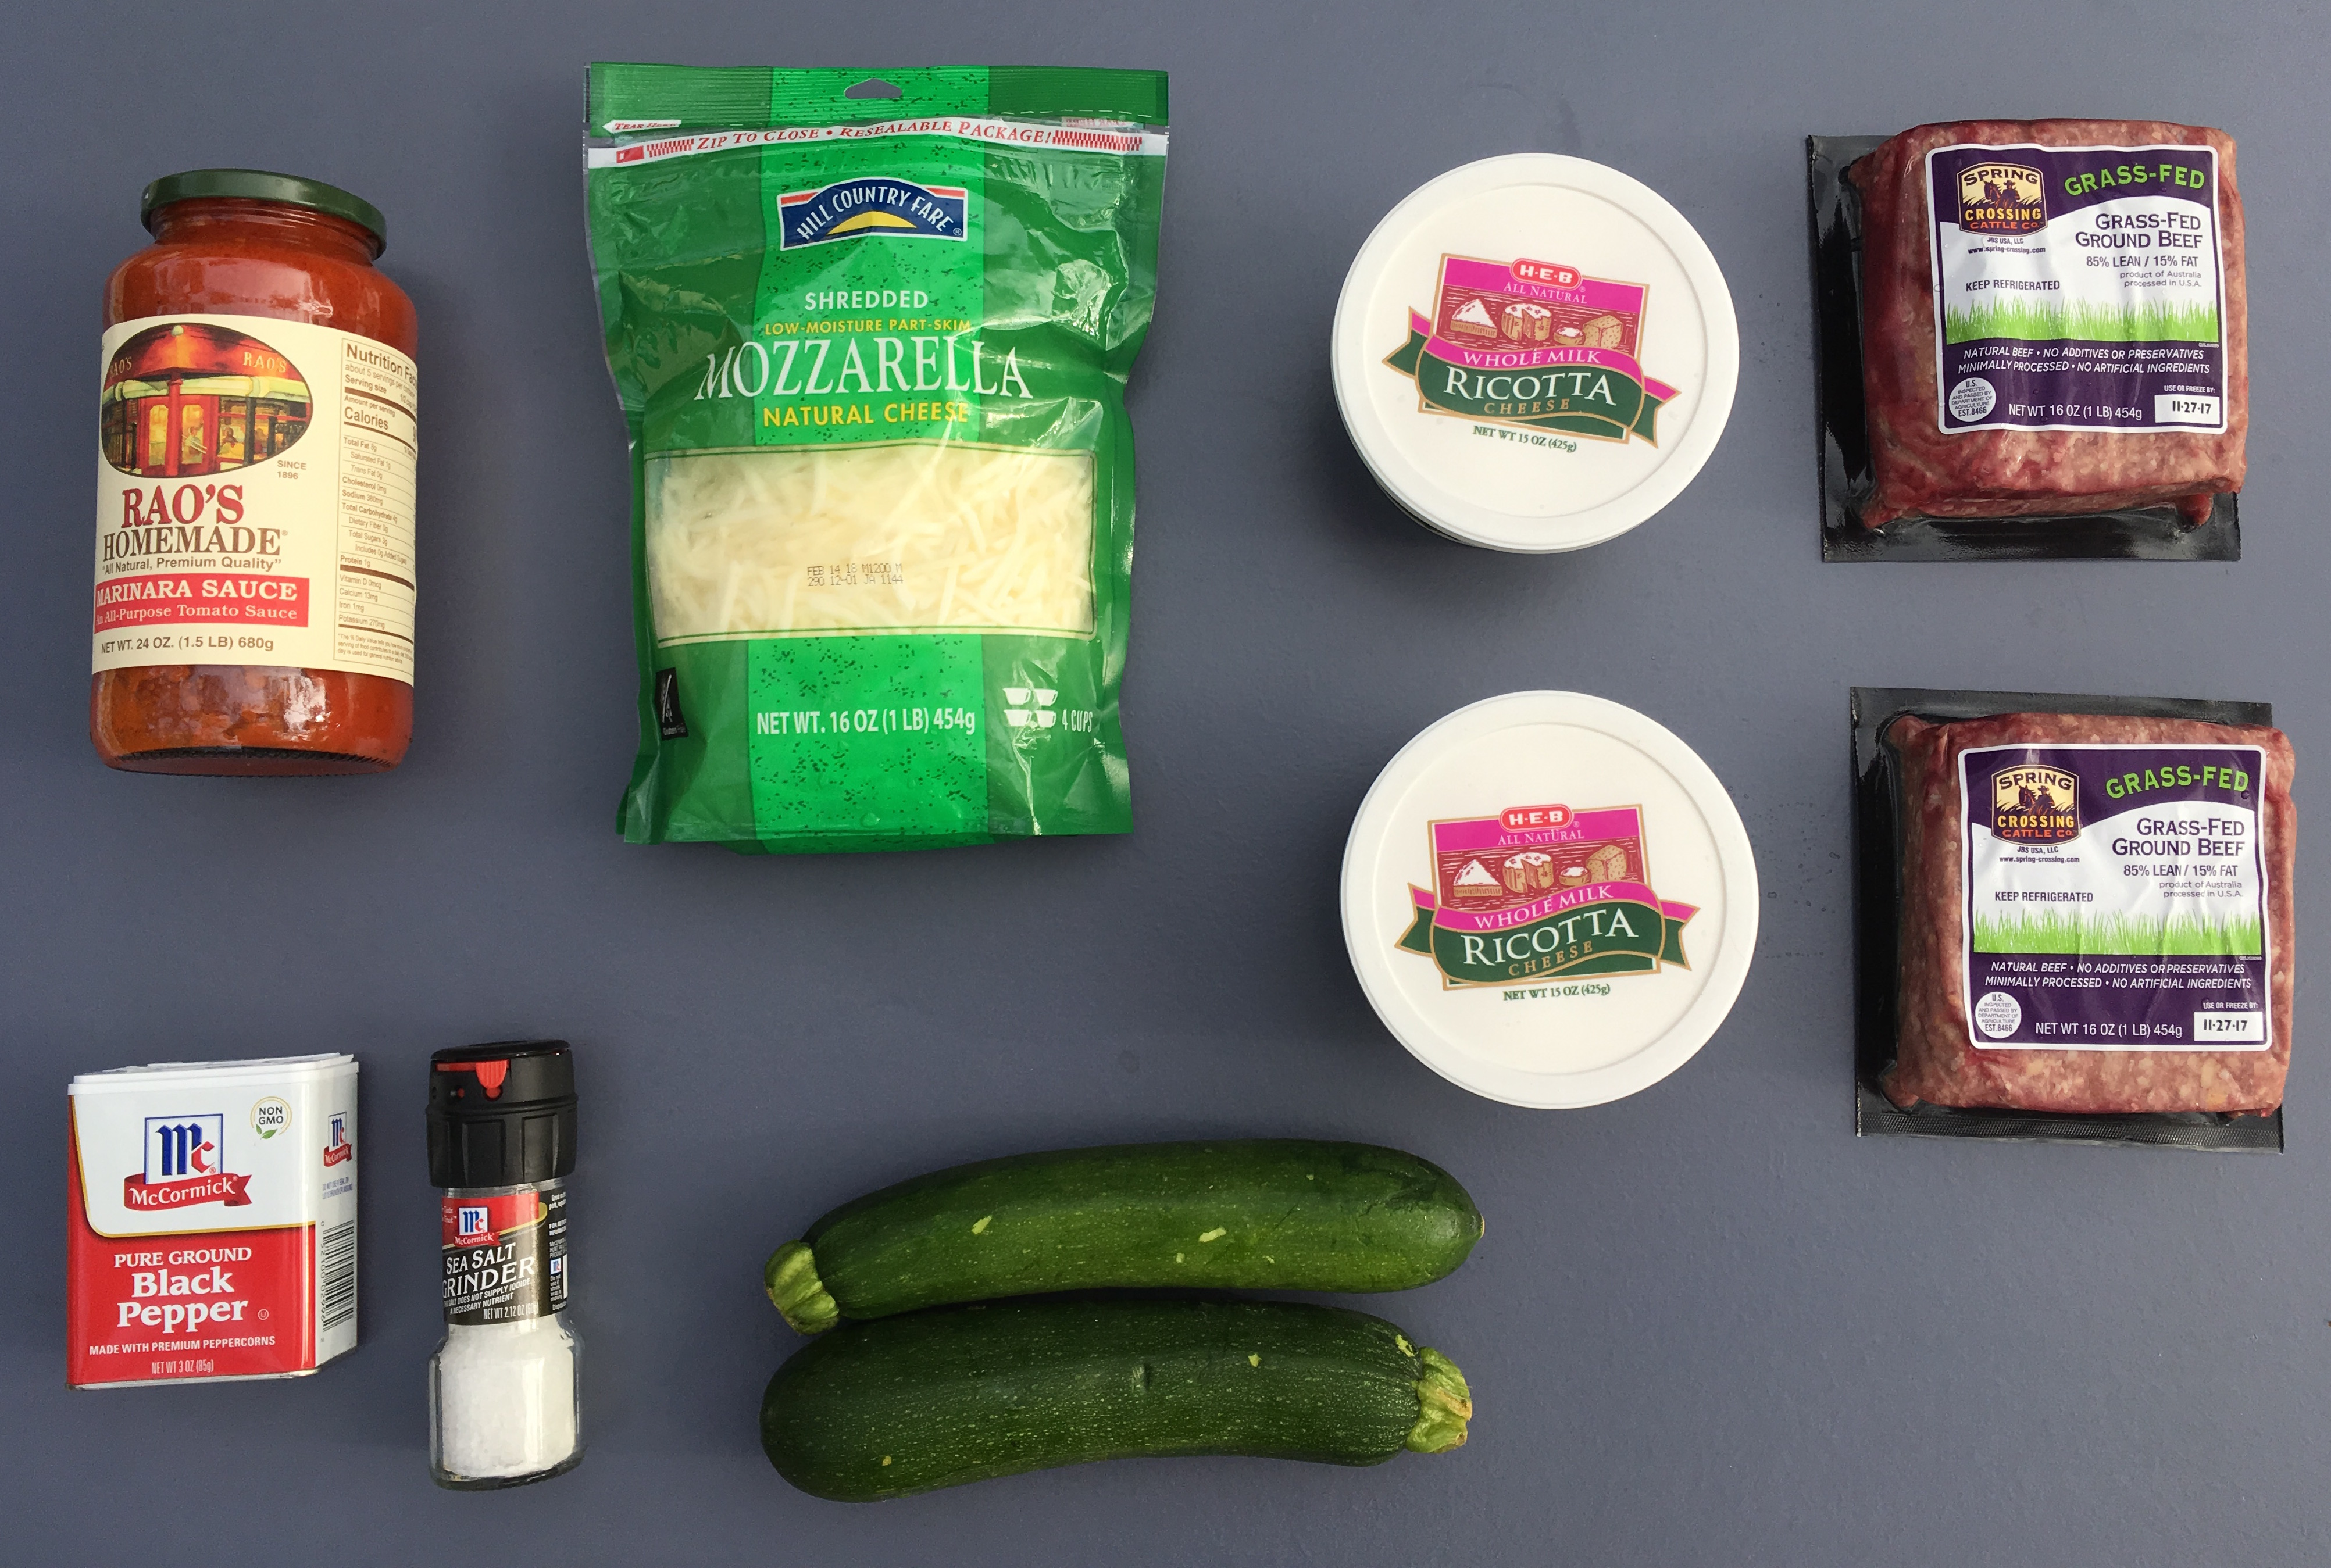 Low Carb Zucchini Lasagna Ingredients